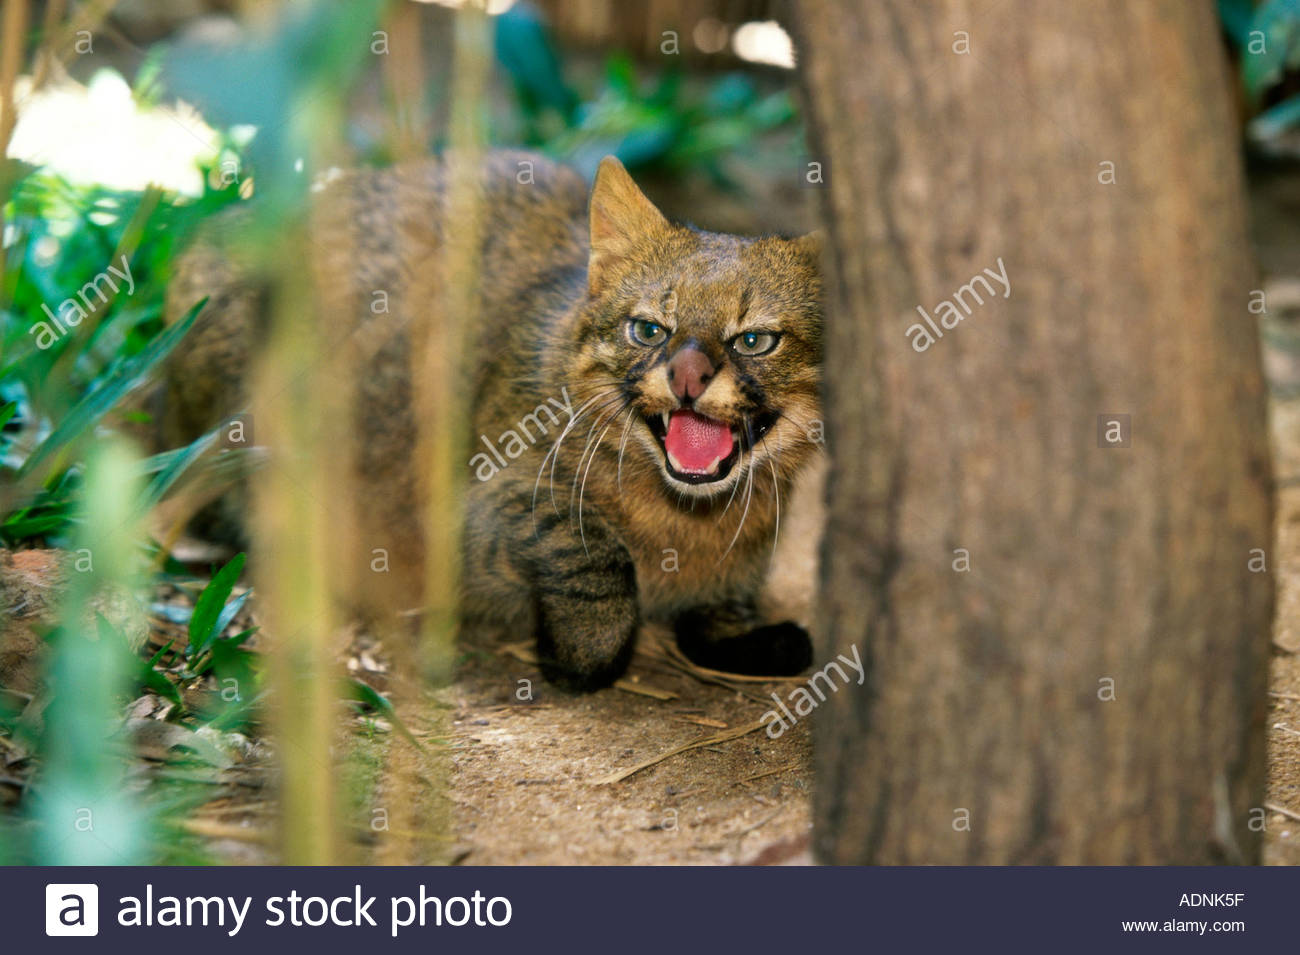 Pampas Cat snarling (Felis colocolo) - Stock Image